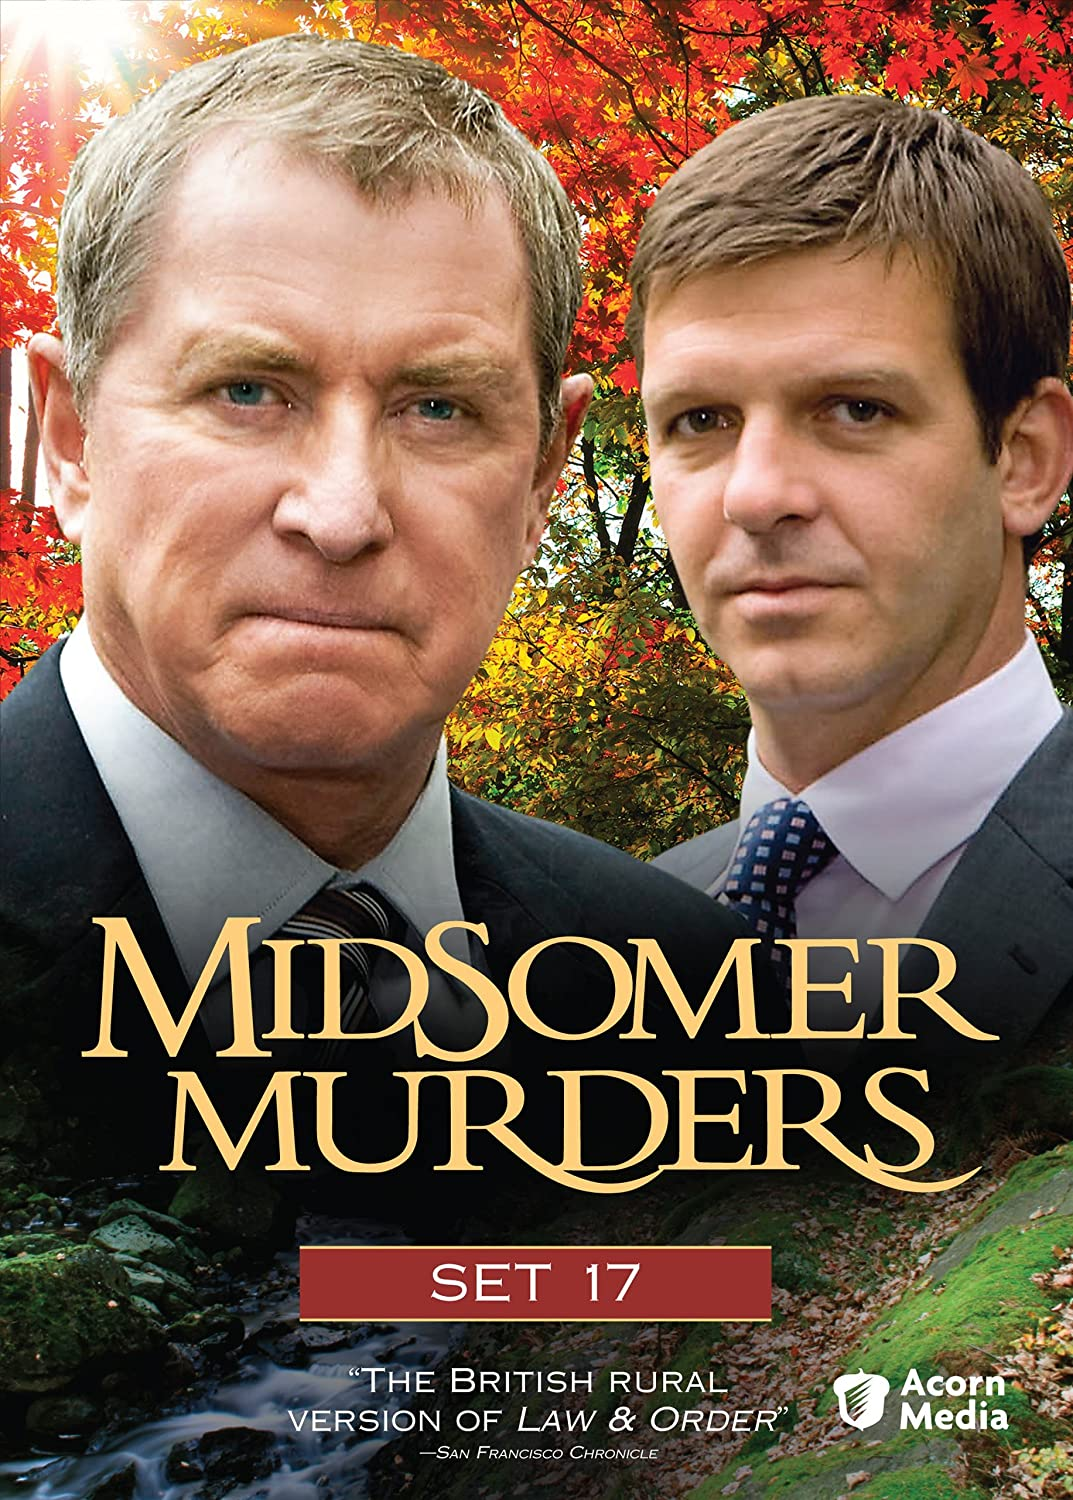 Midsomer Murders: Set 17 (The Dogleg Murders / The Black Book / Secrets and Spies / The Glitch)